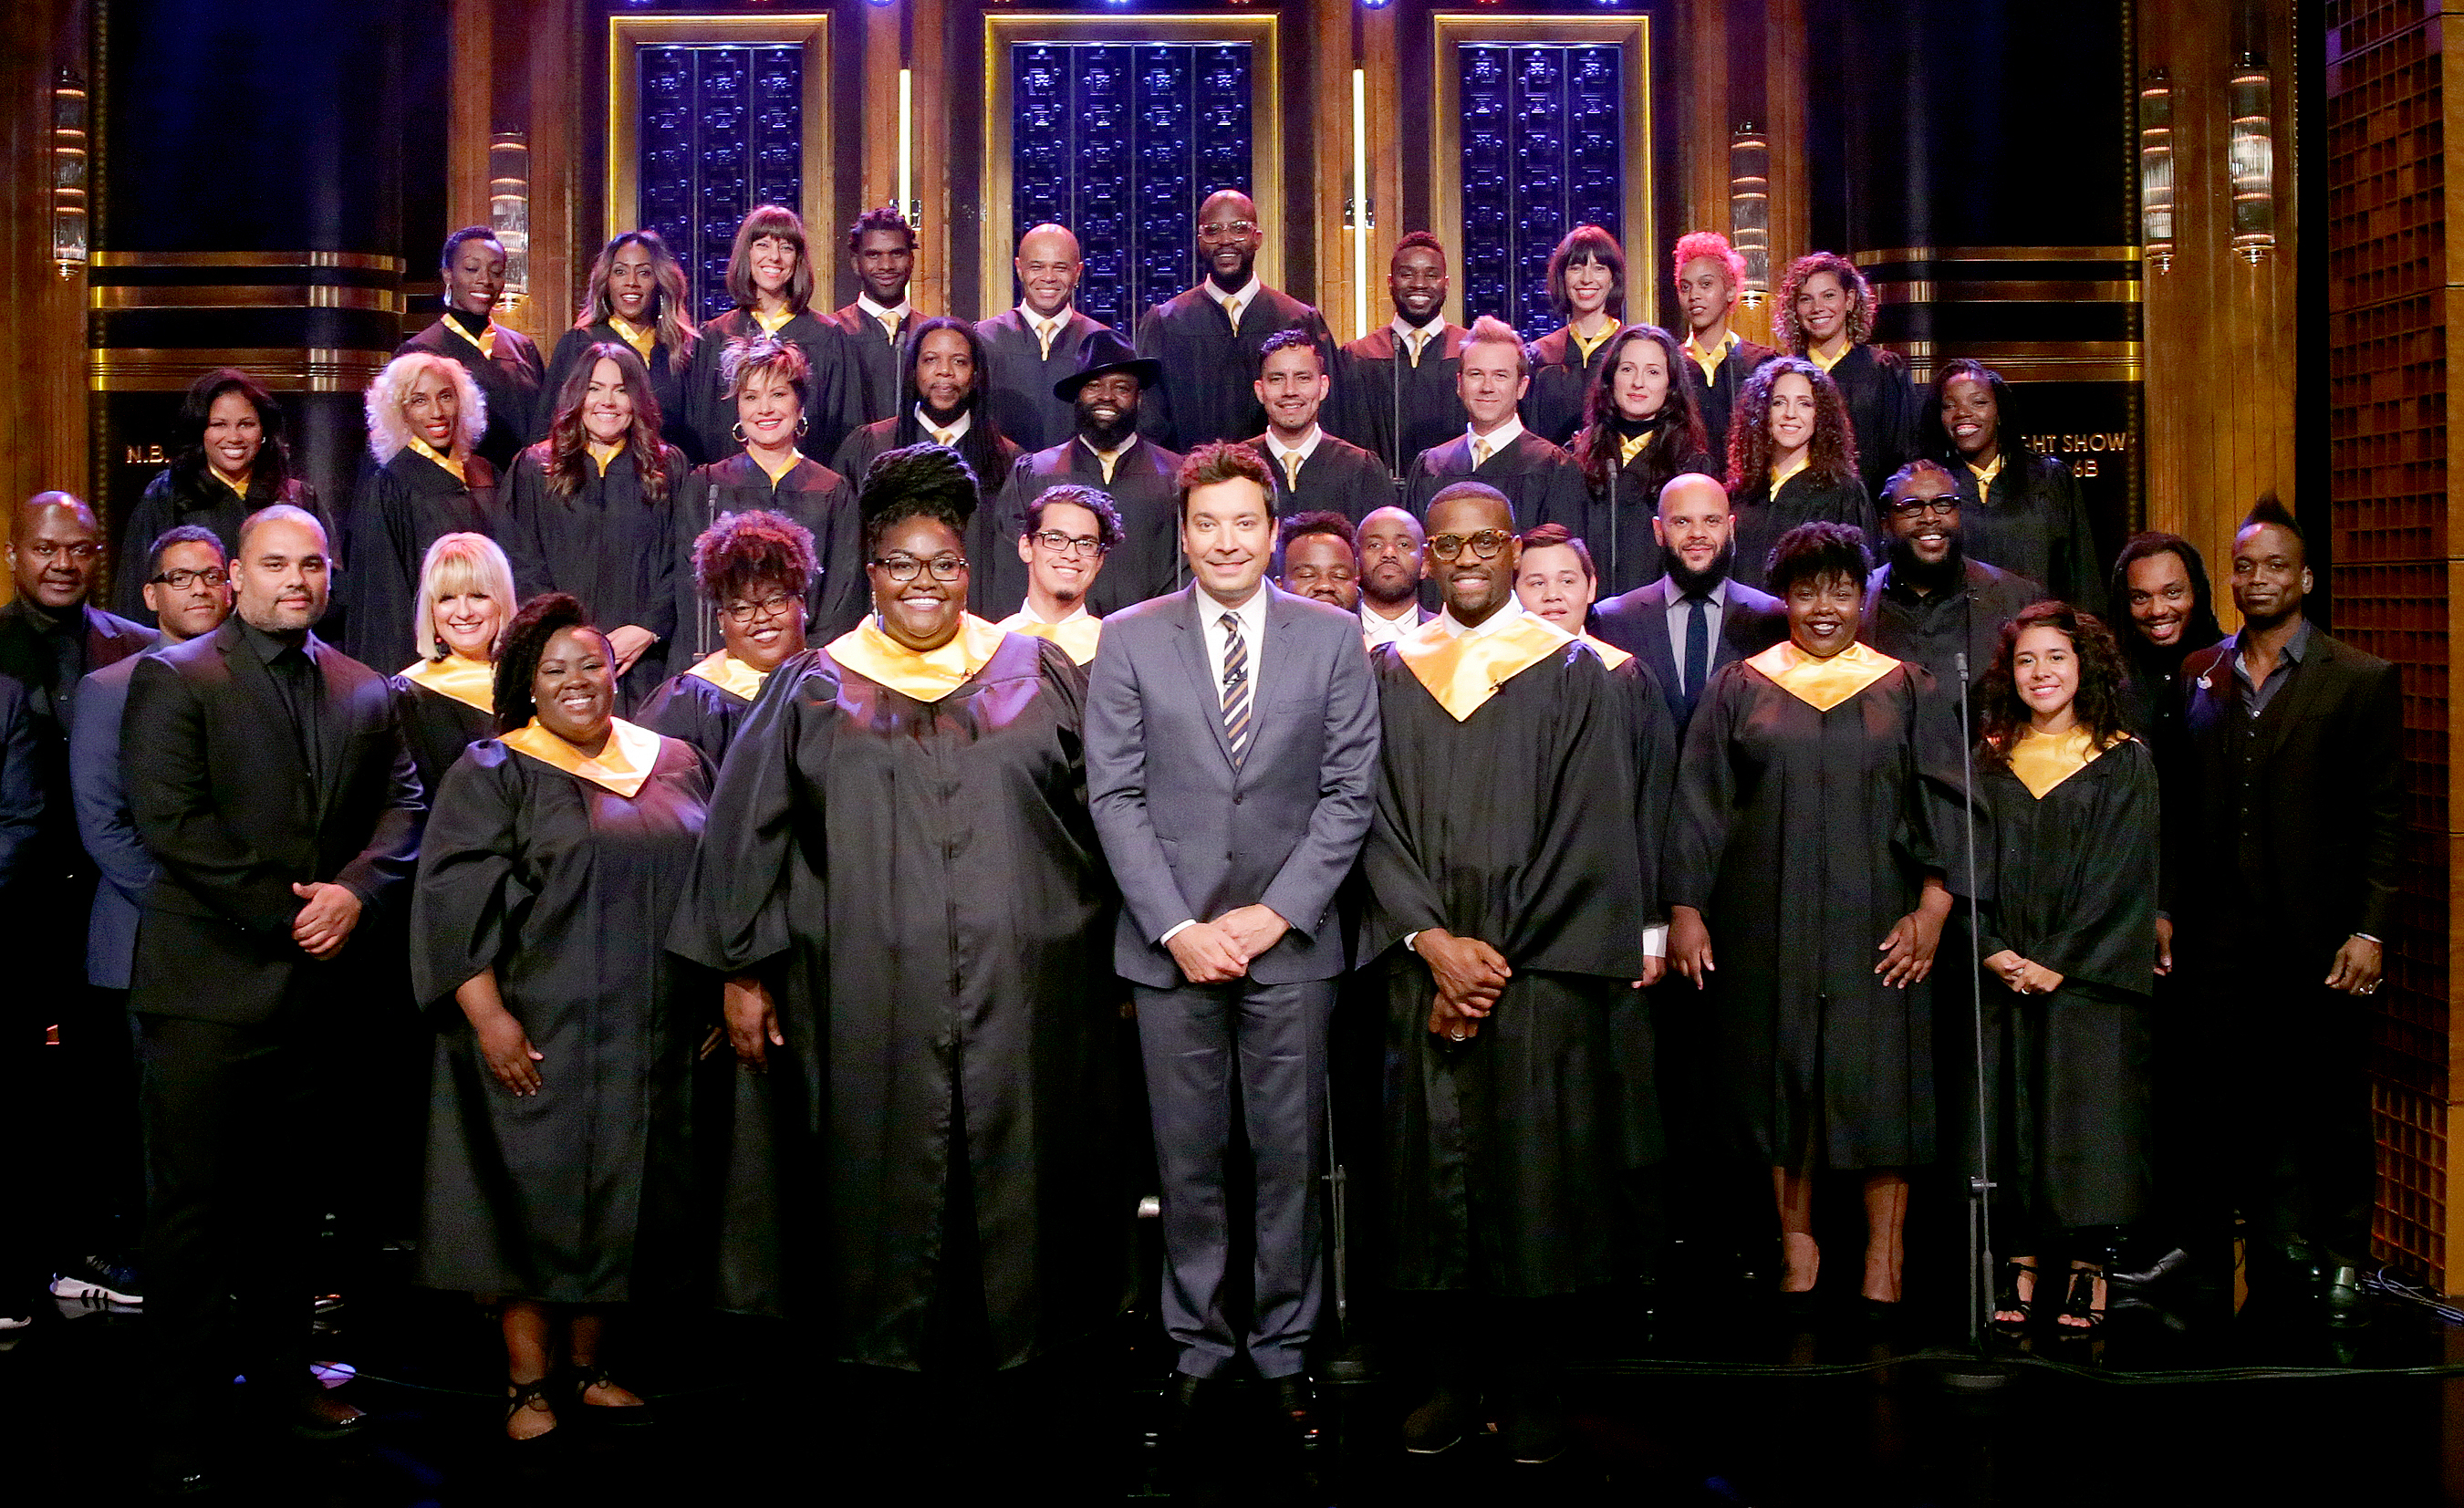 The Houston Choir with Host Jimmy Fallon on September 5, 2017